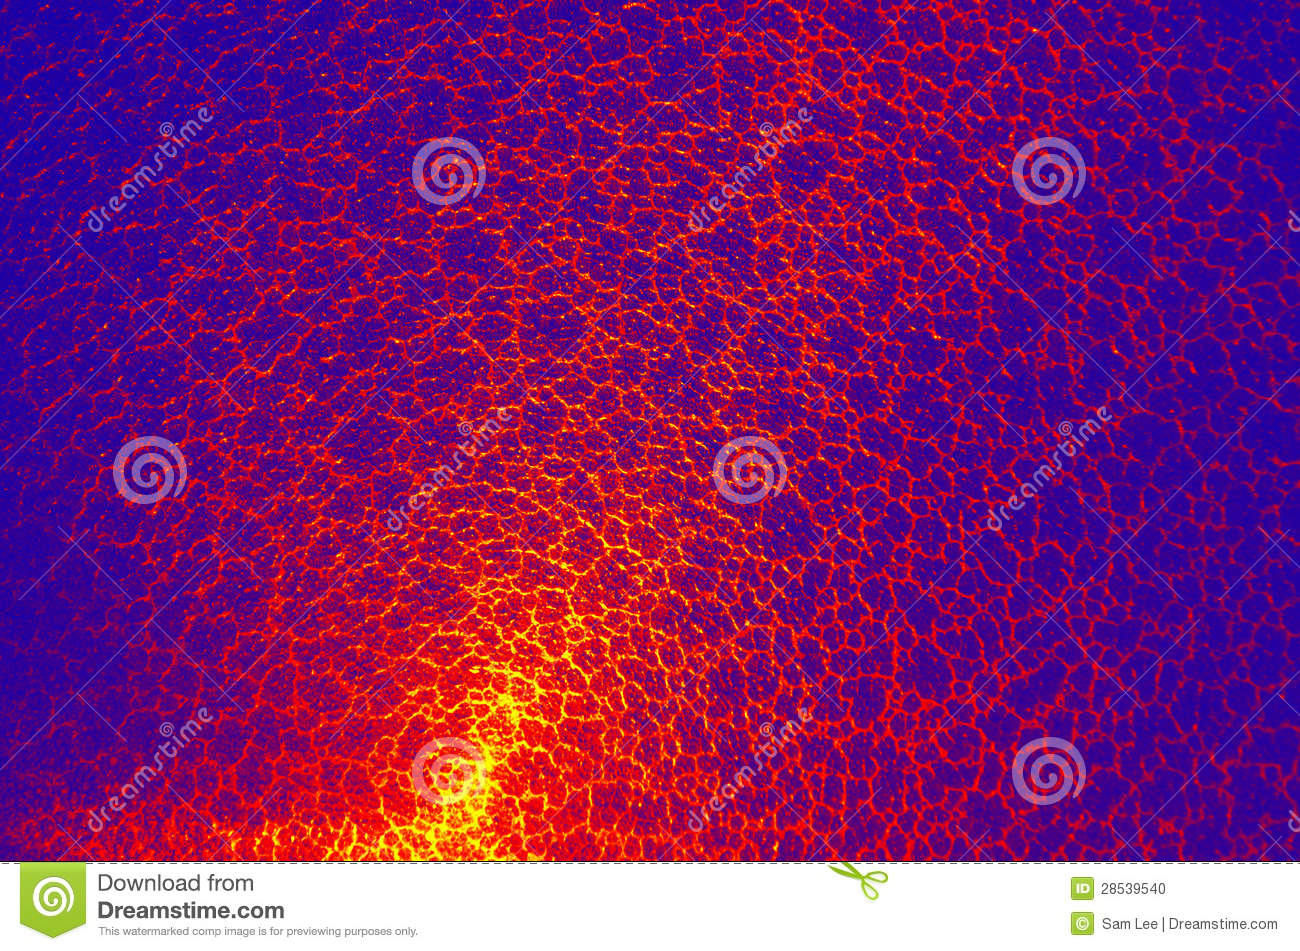 Seamless Crackle Network Pattern Abstract Background (High